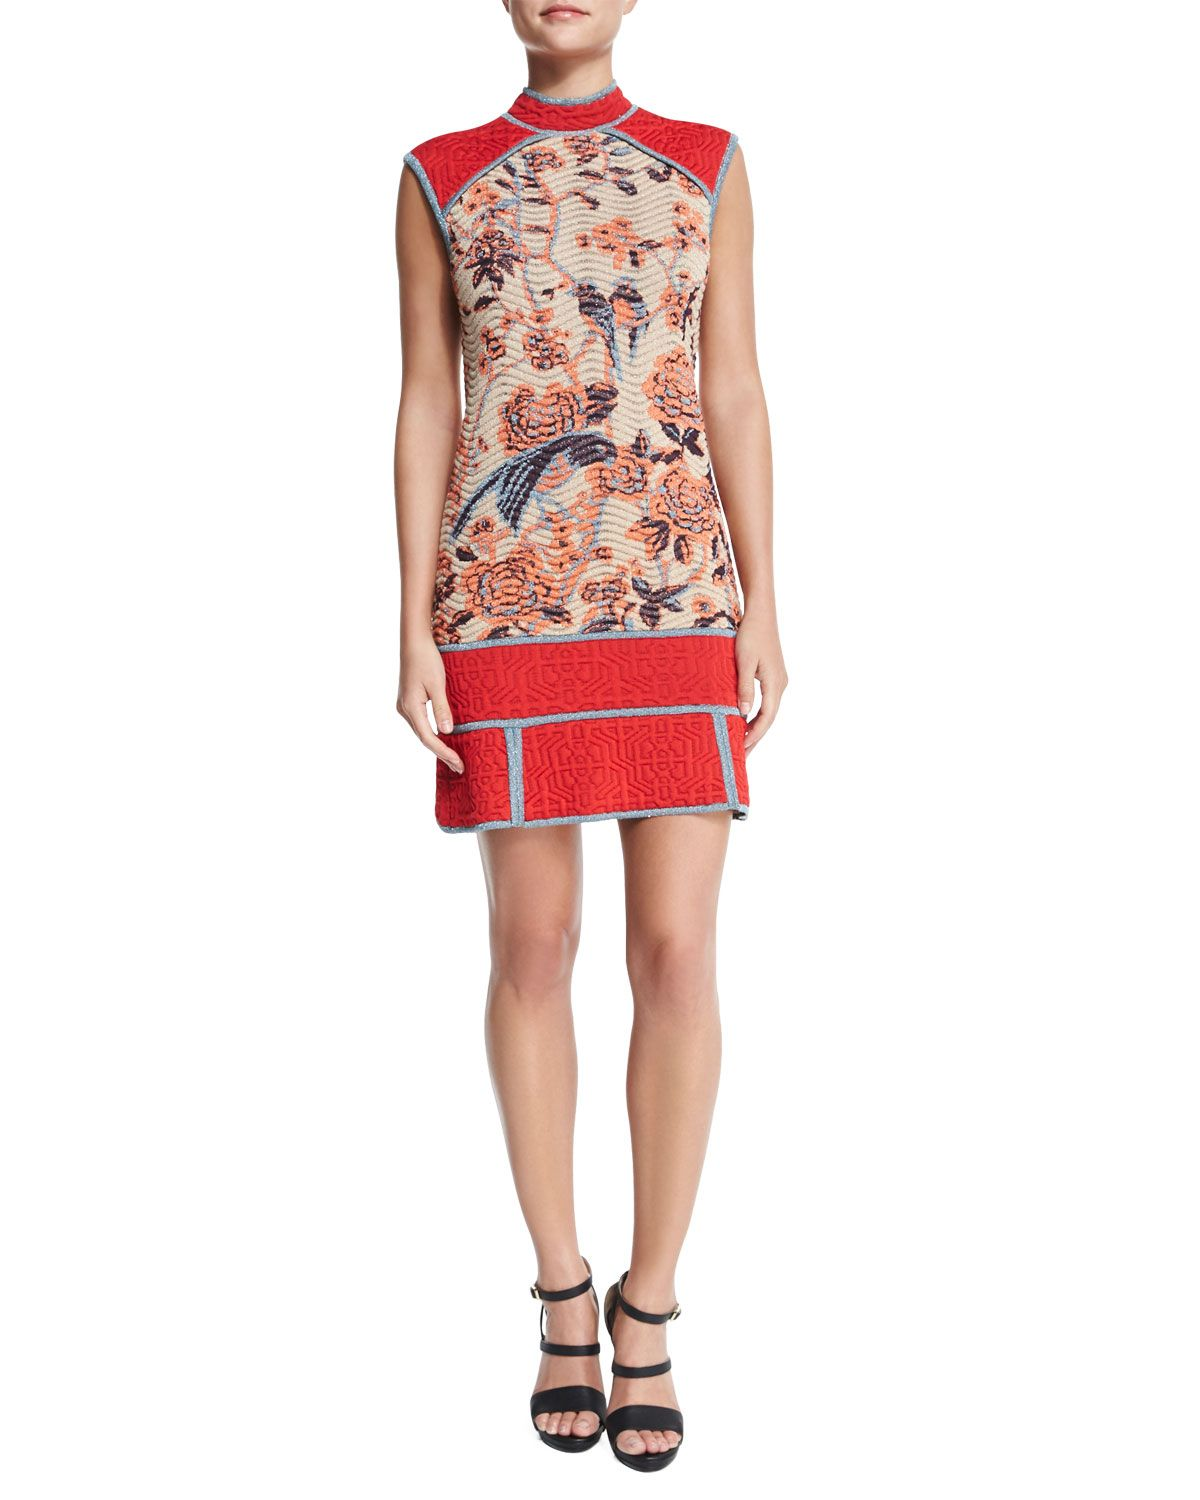 Floral Tapestry Jacquard Dress, Women's, Size: 36, Red - M Missoni